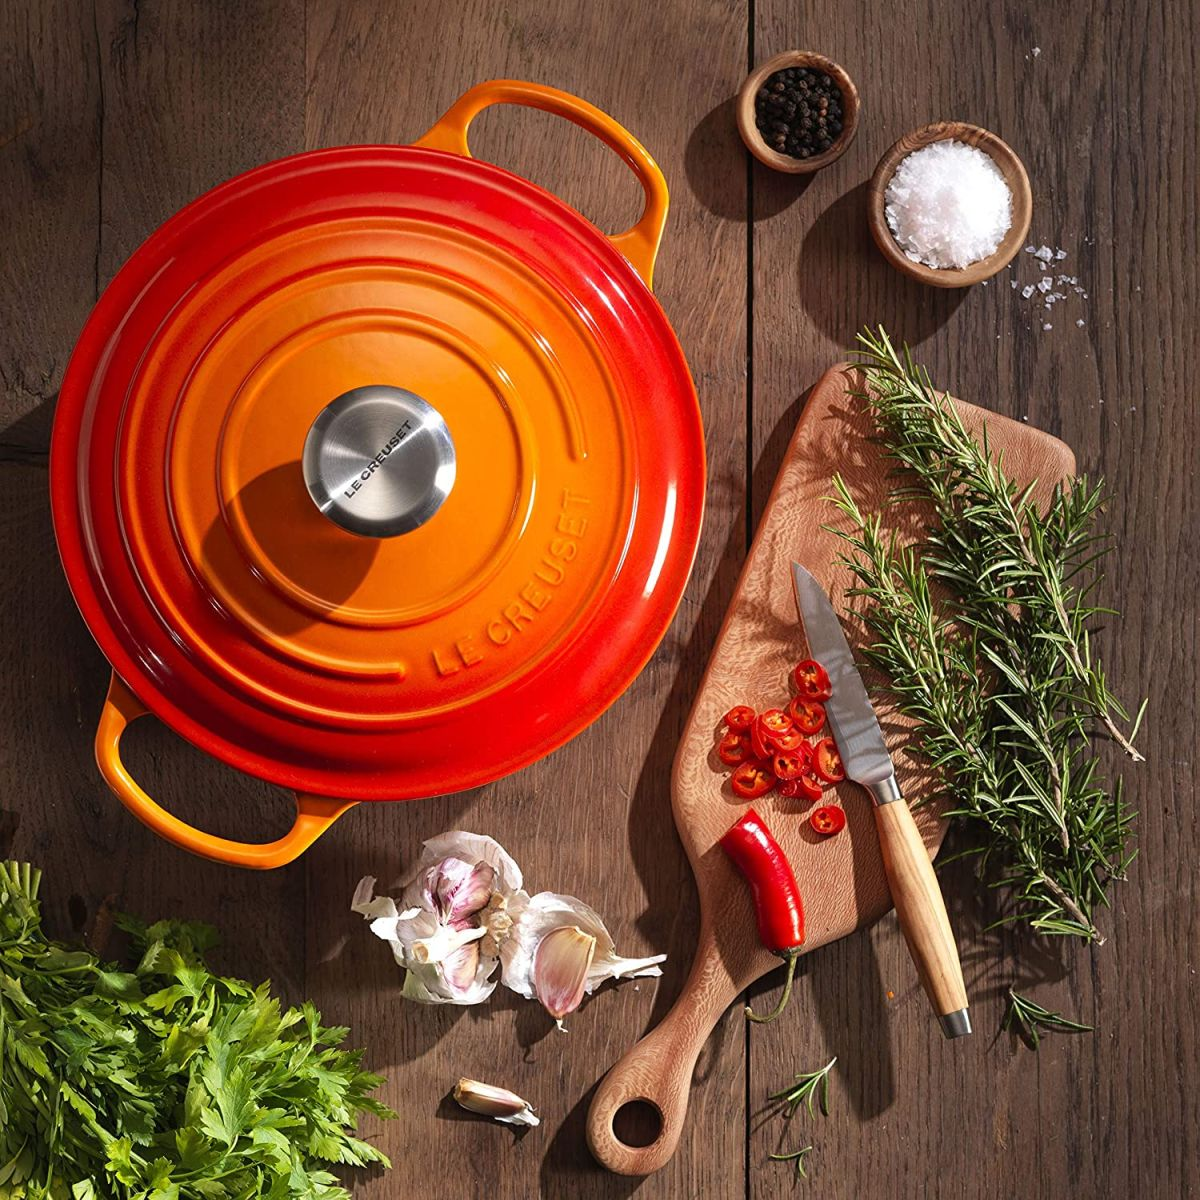 It's that magical time of year: the Le Creuset sale is on